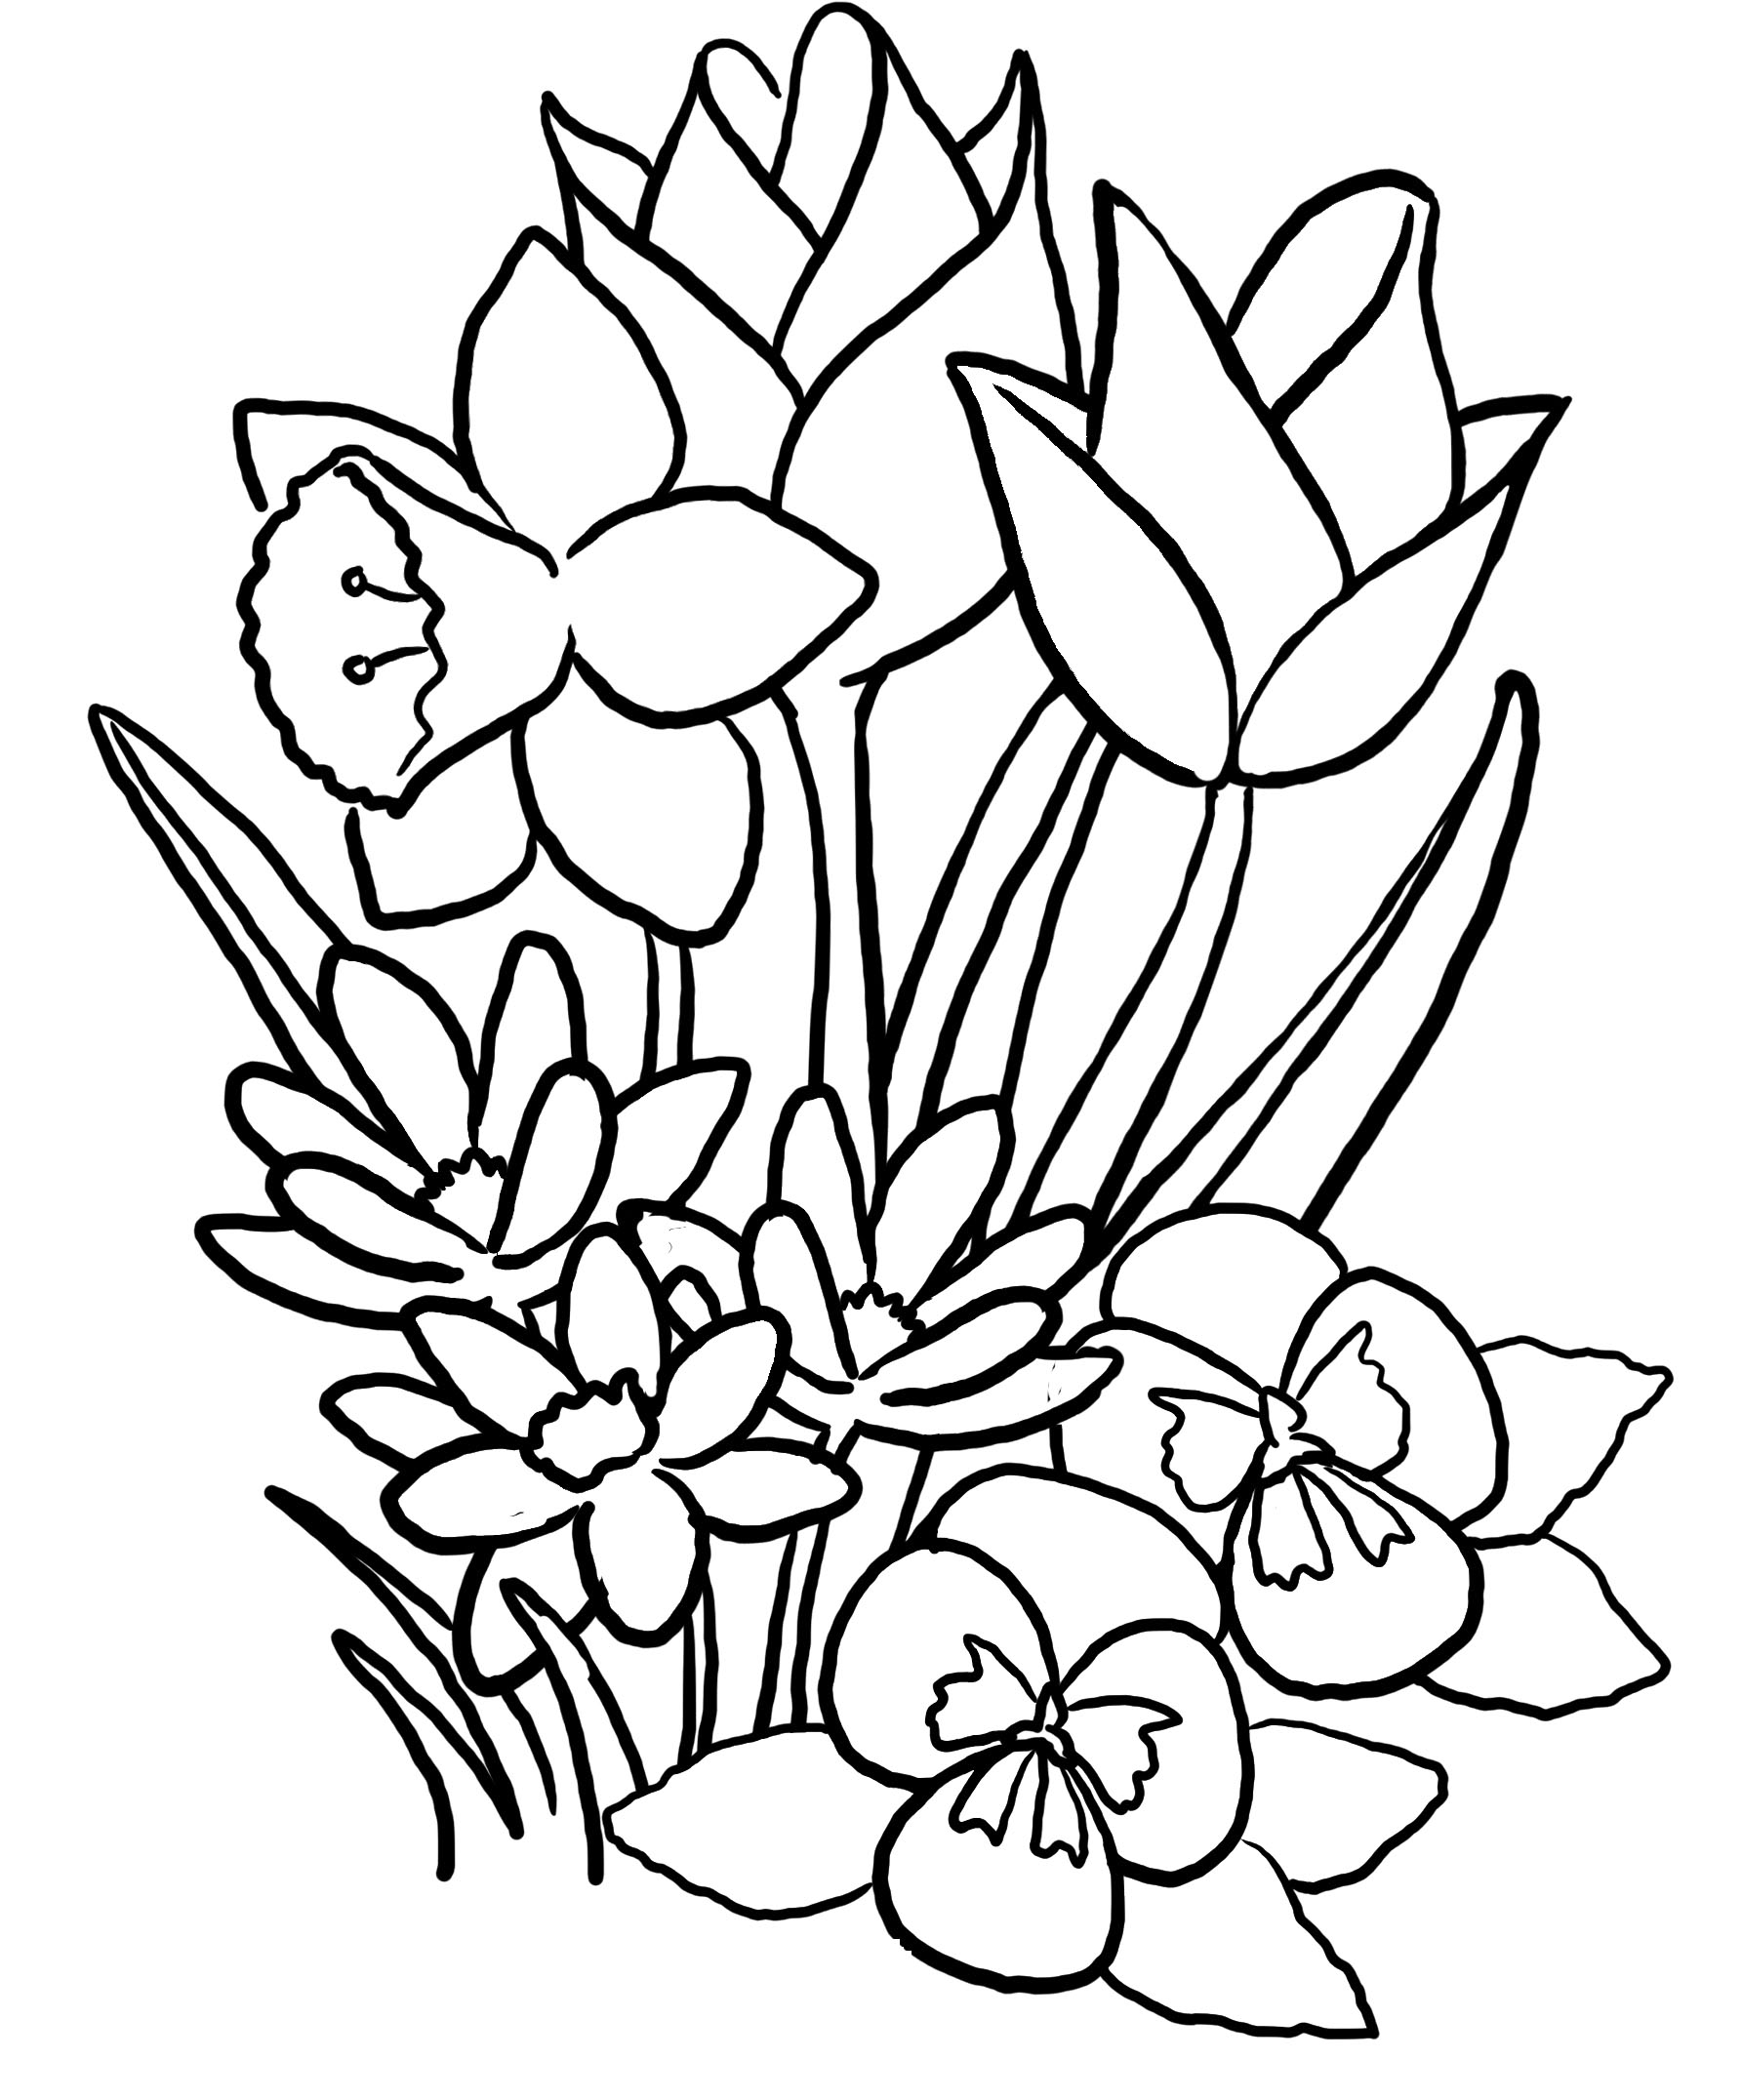 1785x2152 Printable Adult Coloring Pages Flowers Coloring Page For Kids Free